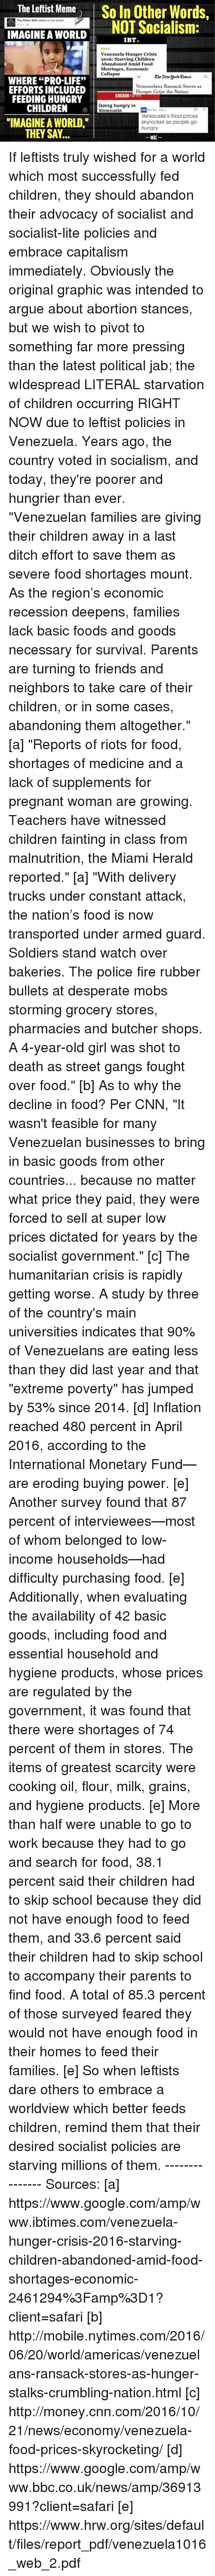 "Arguing, cnn.com, and Dank: The Leftist Meme  So In Other Words,  The other 98% added a new photo.  NOT Socialism:  IMAGINE A WORLD  IBT.  Venezuela Hunger Crisis  2016: Starving Children  Abandoned Amid Food  Shortages, Economic  Collapse  Elbe Aenvuork Cimes  WHERE ""PRO-LIFE""  Venezuelans Ransack Stores as  EFFORTS INCLUDED  Hunger Grips the Nation  BBC  FEEDING HUNGRY  Going hungry in  CHILDREN  Venezuela  ON Money US.  Venezuela's food prices  ""IMAGINE A WORLD.""  skyrocket as people go  hungry  THEY SAY  WAC If leftists truly wished for a world which most successfully fed children, they should abandon their advocacy of socialist and socialist-lite policies and embrace capitalism immediately. Obviously the original graphic was intended to argue about abortion stances, but we wish to pivot to something far more pressing than the latest political jab; the wIdespread LITERAL starvation of children occurring RIGHT NOW due to leftist policies in Venezuela. Years ago, the country voted in socialism, and today, they're poorer and hungrier than ever.   ""Venezuelan families are giving their children away in a last ditch effort to save them as severe food shortages mount. As the region's economic recession deepens, families lack basic foods and goods necessary for survival. Parents are turning to friends and neighbors to take care of their children, or in some cases, abandoning them altogether."" [a]  ""Reports of riots for food, shortages of medicine and a lack of supplements for pregnant woman are growing. Teachers have witnessed children fainting in class from malnutrition, the Miami Herald reported."" [a]  ""With delivery trucks under constant attack, the nation's food is now transported under armed guard. Soldiers stand watch over bakeries. The police fire rubber bullets at desperate mobs storming grocery stores, pharmacies and butcher shops. A 4-year-old girl was shot to death as street gangs fought over food."" [b]  As to why the decline in food? Per CNN, ""It wasn't feasible for many Venezuelan businesses to bring in basic goods from other countries... because no matter what price they paid, they were forced to sell at super low prices dictated for years by the socialist government."" [c]  The humanitarian crisis is rapidly getting worse. A study by three of the country's main universities indicates that 90% of Venezuelans are eating less than they did last year and that ""extreme poverty"" has jumped by 53% since 2014. [d] Inflation reached 480 percent in April 2016, according to the International Monetary Fund— are eroding buying power. [e] Another survey found that 87 percent of interviewees—most of whom belonged to low-income households—had difficulty purchasing food. [e] Additionally, when evaluating the availability of 42 basic goods, including food and essential household and hygiene products, whose prices are regulated by the government, it was found that there were shortages of 74 percent of them in stores. The items of greatest scarcity were cooking oil, flour, milk, grains, and hygiene products. [e] More than half were unable to go to work because they had to go and search for food, 38.1 percent said their children had to skip school because they did not have enough food to feed them, and 33.6 percent said their children had to skip school to accompany their parents to find food. A total of 85.3 percent of those surveyed feared they would not have enough food in their homes to feed their families. [e]  So when leftists dare others to embrace a worldview which better feeds children, remind them that their desired socialist policies are starving millions of them.  --------------- Sources: [a] https://www.google.com/amp/www.ibtimes.com/venezuela-hunger-crisis-2016-starving-children-abandoned-amid-food-shortages-economic-2461294%3Famp%3D1?client=safari  [b] http://mobile.nytimes.com/2016/06/20/world/americas/venezuelans-ransack-stores-as-hunger-stalks-crumbling-nation.html  [c] http://money.cnn.com/2016/10/21/news/economy/venezuela-food-prices-skyrocketing/  [d] https://www.google.com/amp/www.bbc.co.uk/news/amp/36913991?client=safari  [e] https://www.hrw.org/sites/default/files/report_pdf/venezuela1016_web_2.pdf"